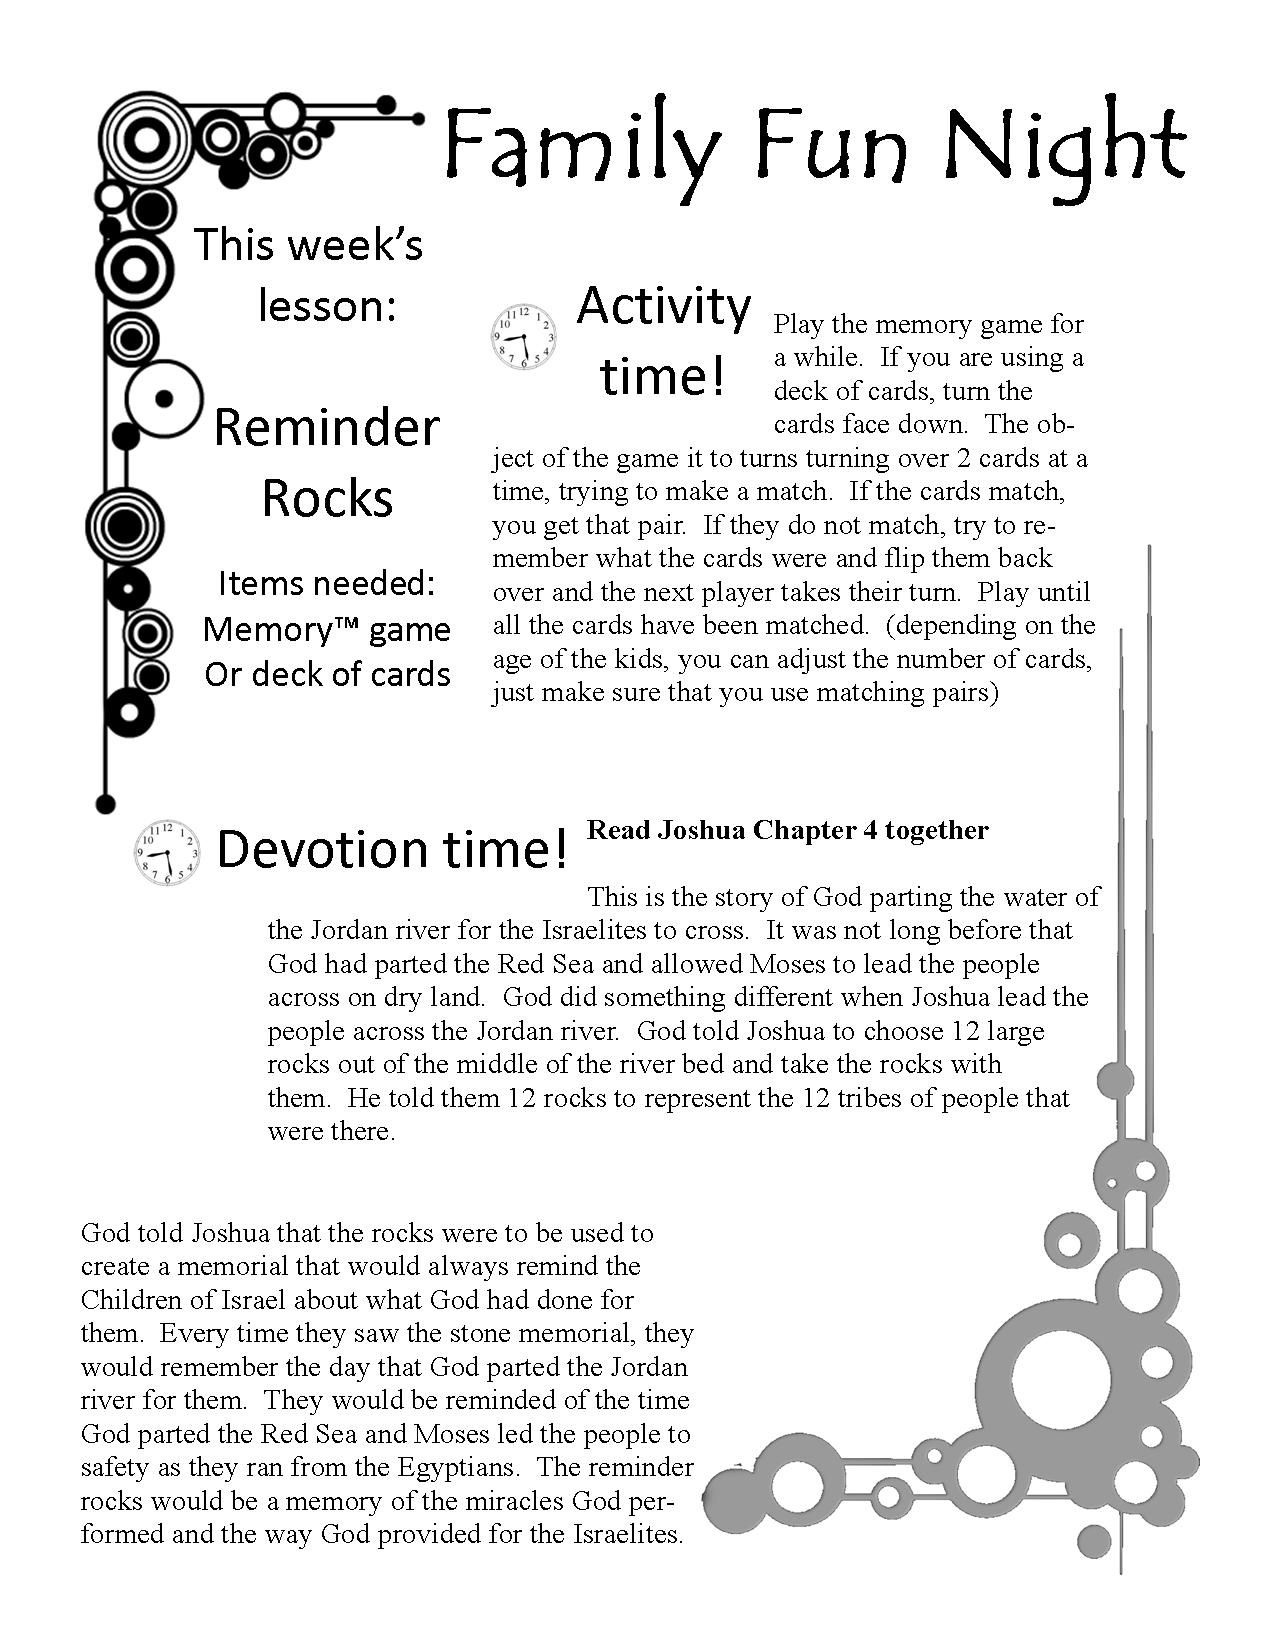 Free Family Fun Devotion Time. Printable Game, Lesson, Activity - Bible Lessons For Adults Free Printable